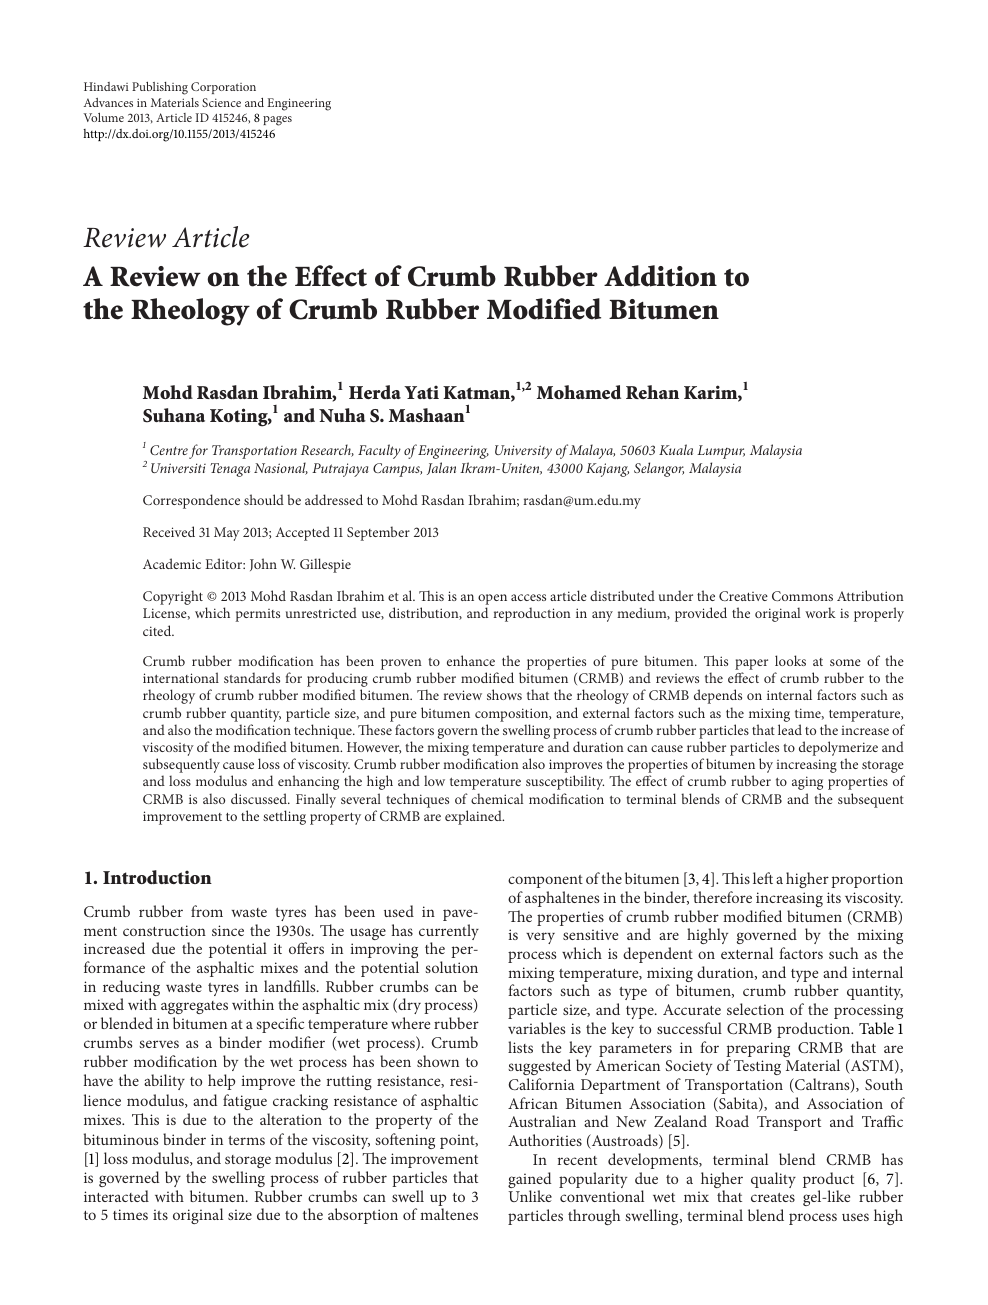 A Review on the Effect of Crumb Rubber Addition to the Rheology of